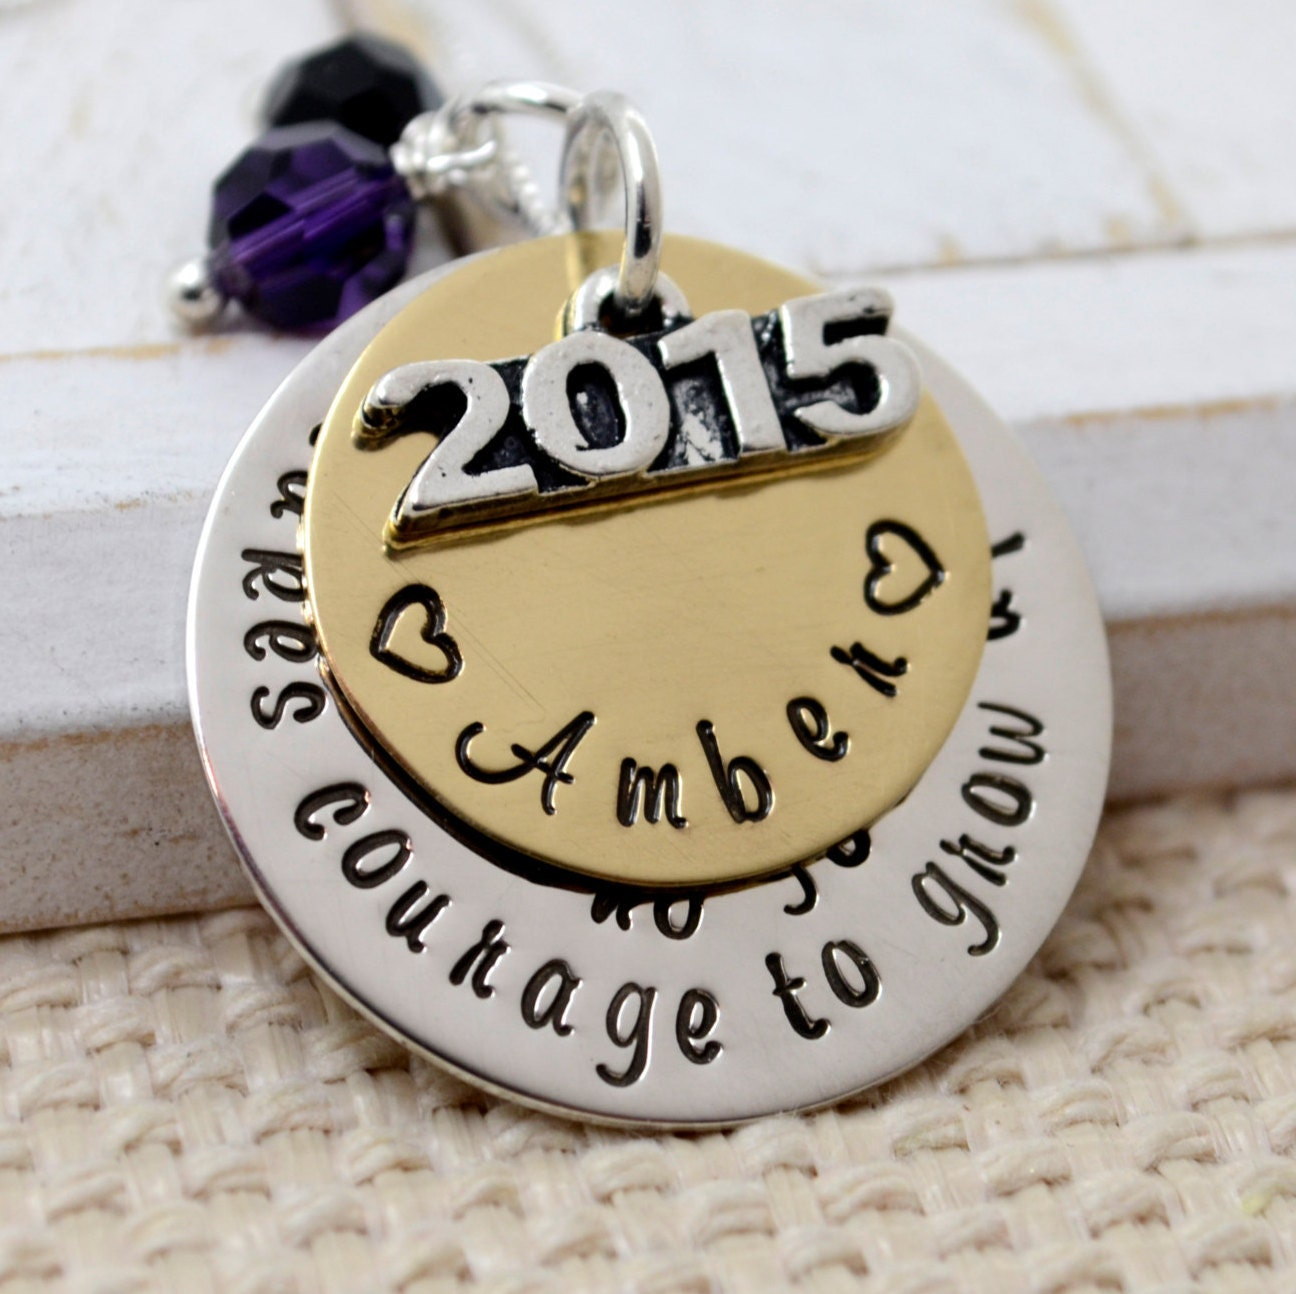 Personalized Graduation Necklace 2016  Graduation Gift. Risk Matrix Template Excel. 5k Race Registration Form Template. Good Excel Invoice Templates Free. Youtube Wall Art. 2016 Year Calendar Template. Free Homeschool Transcript Template. Closed For 4th Of July Sign Template. Weekly Planner Template Excel